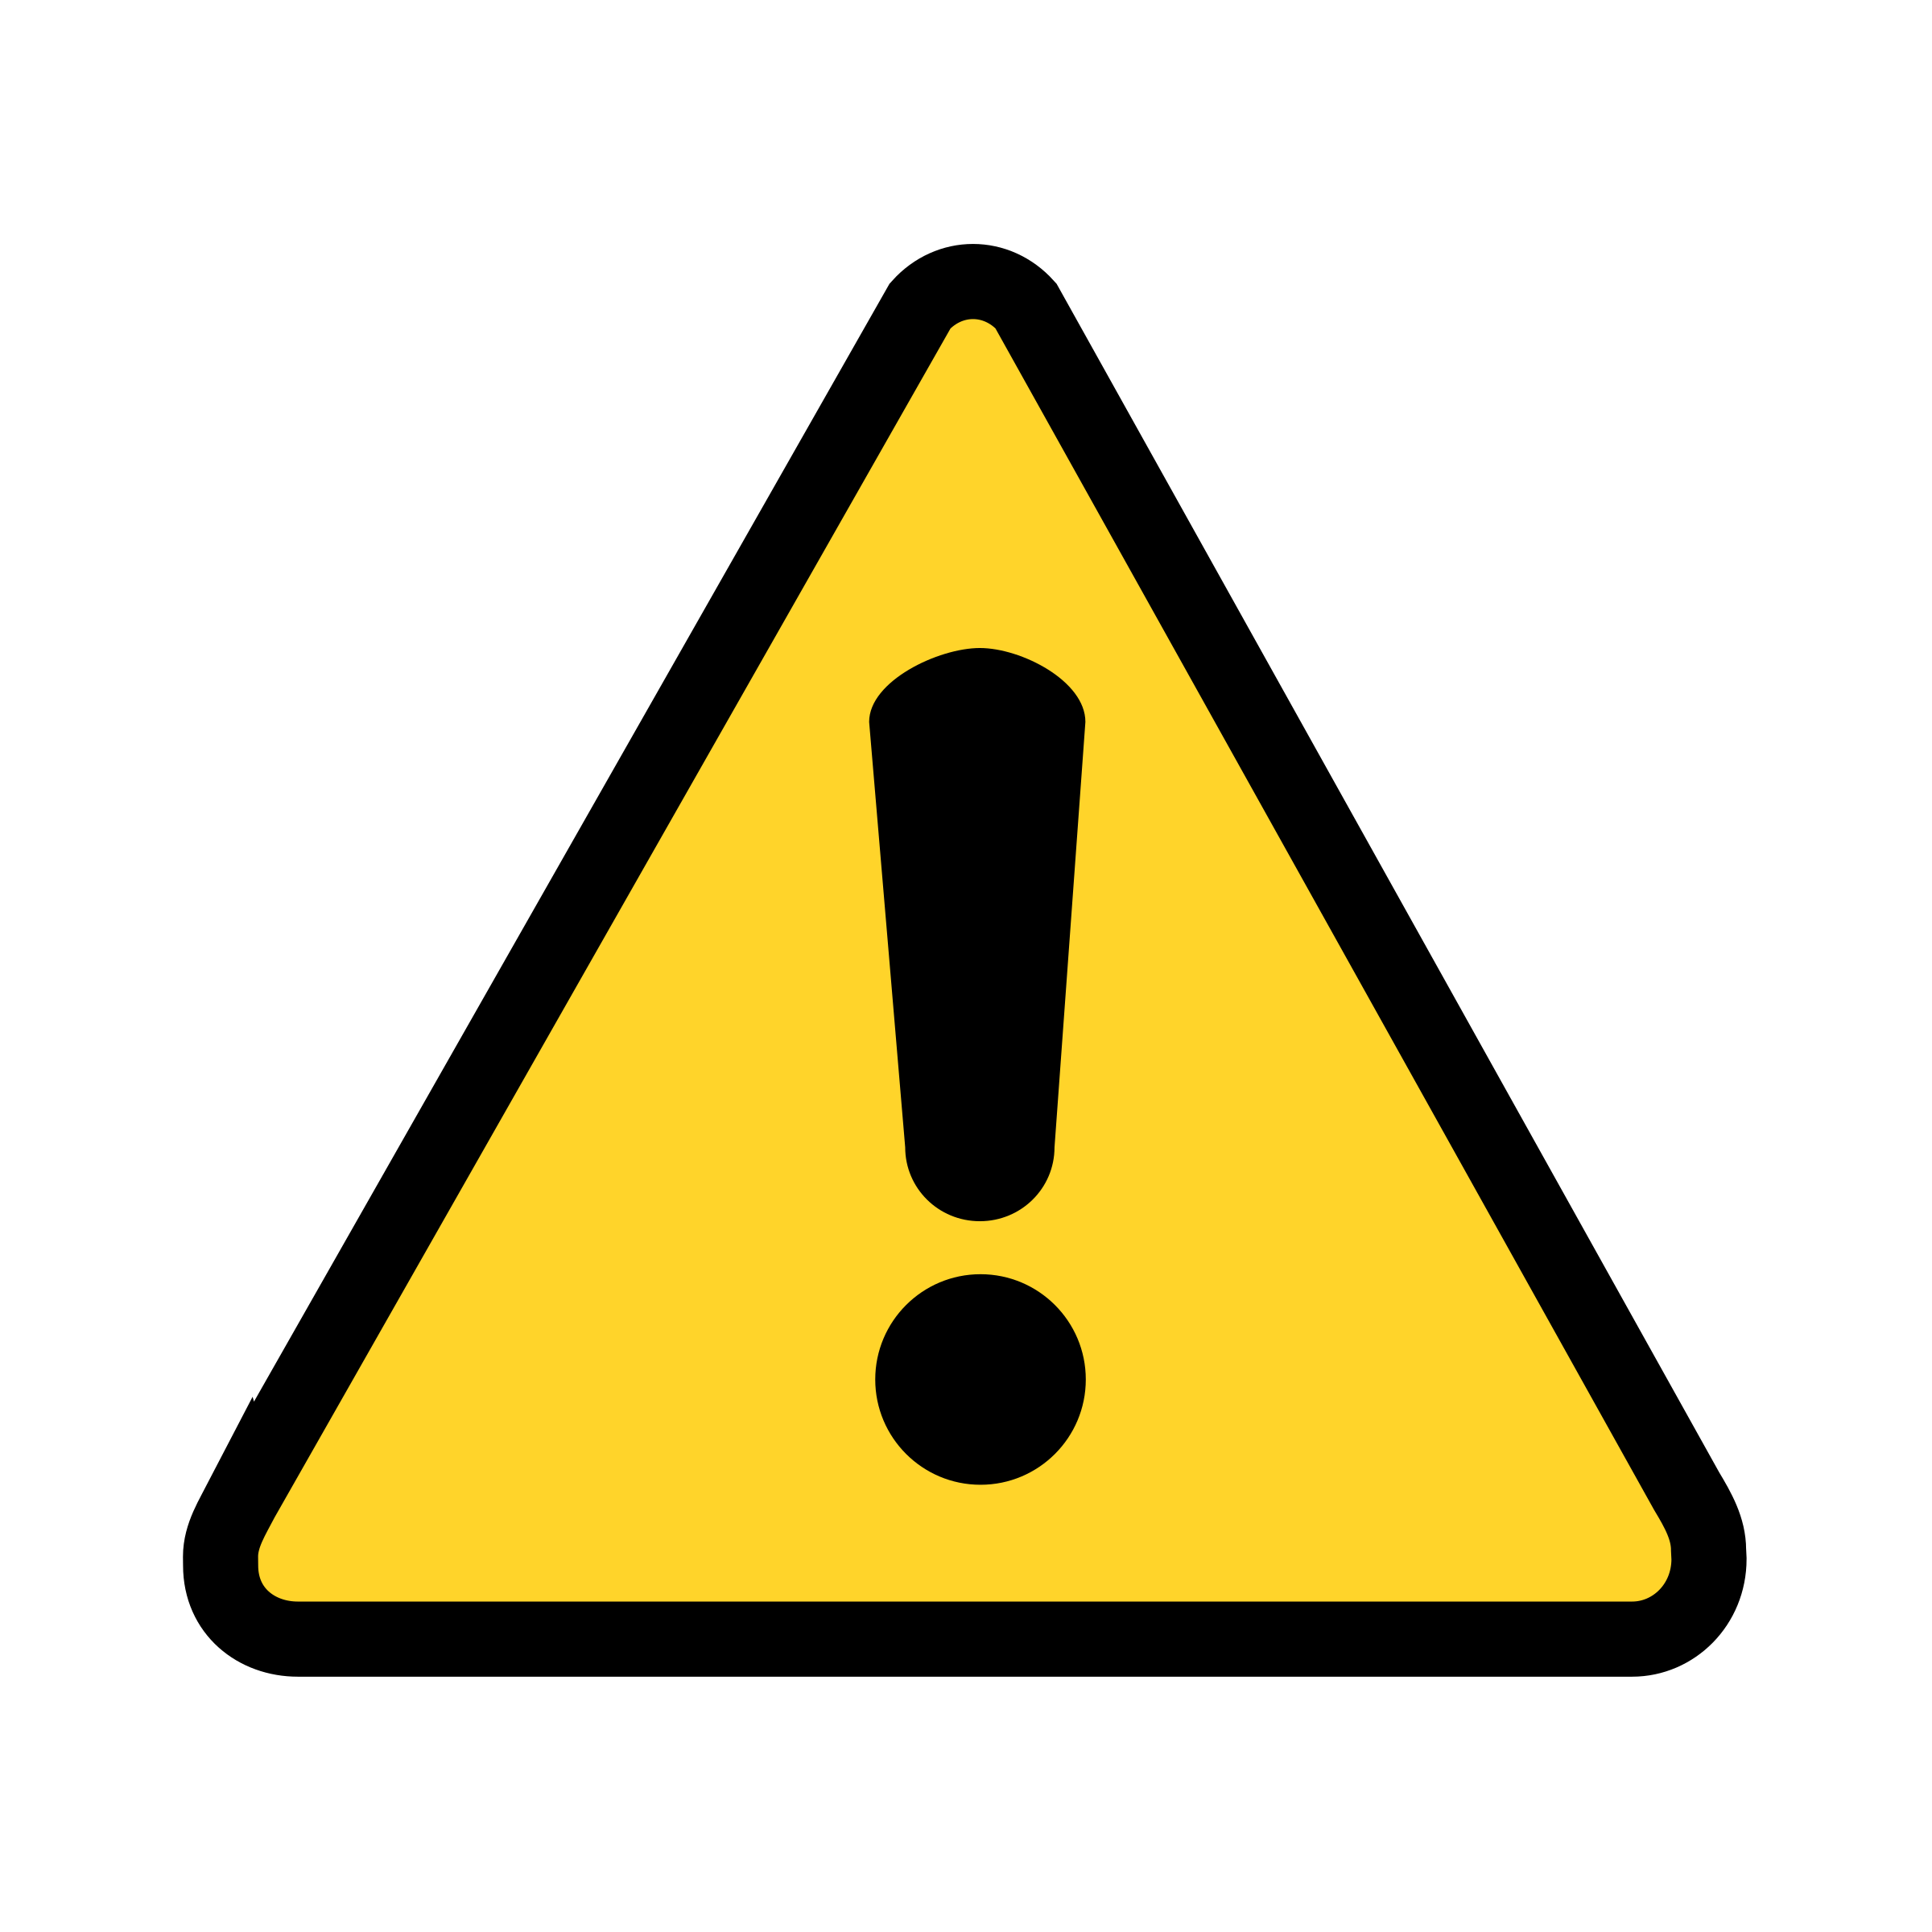 Caution clipart simbol. Attention png images free